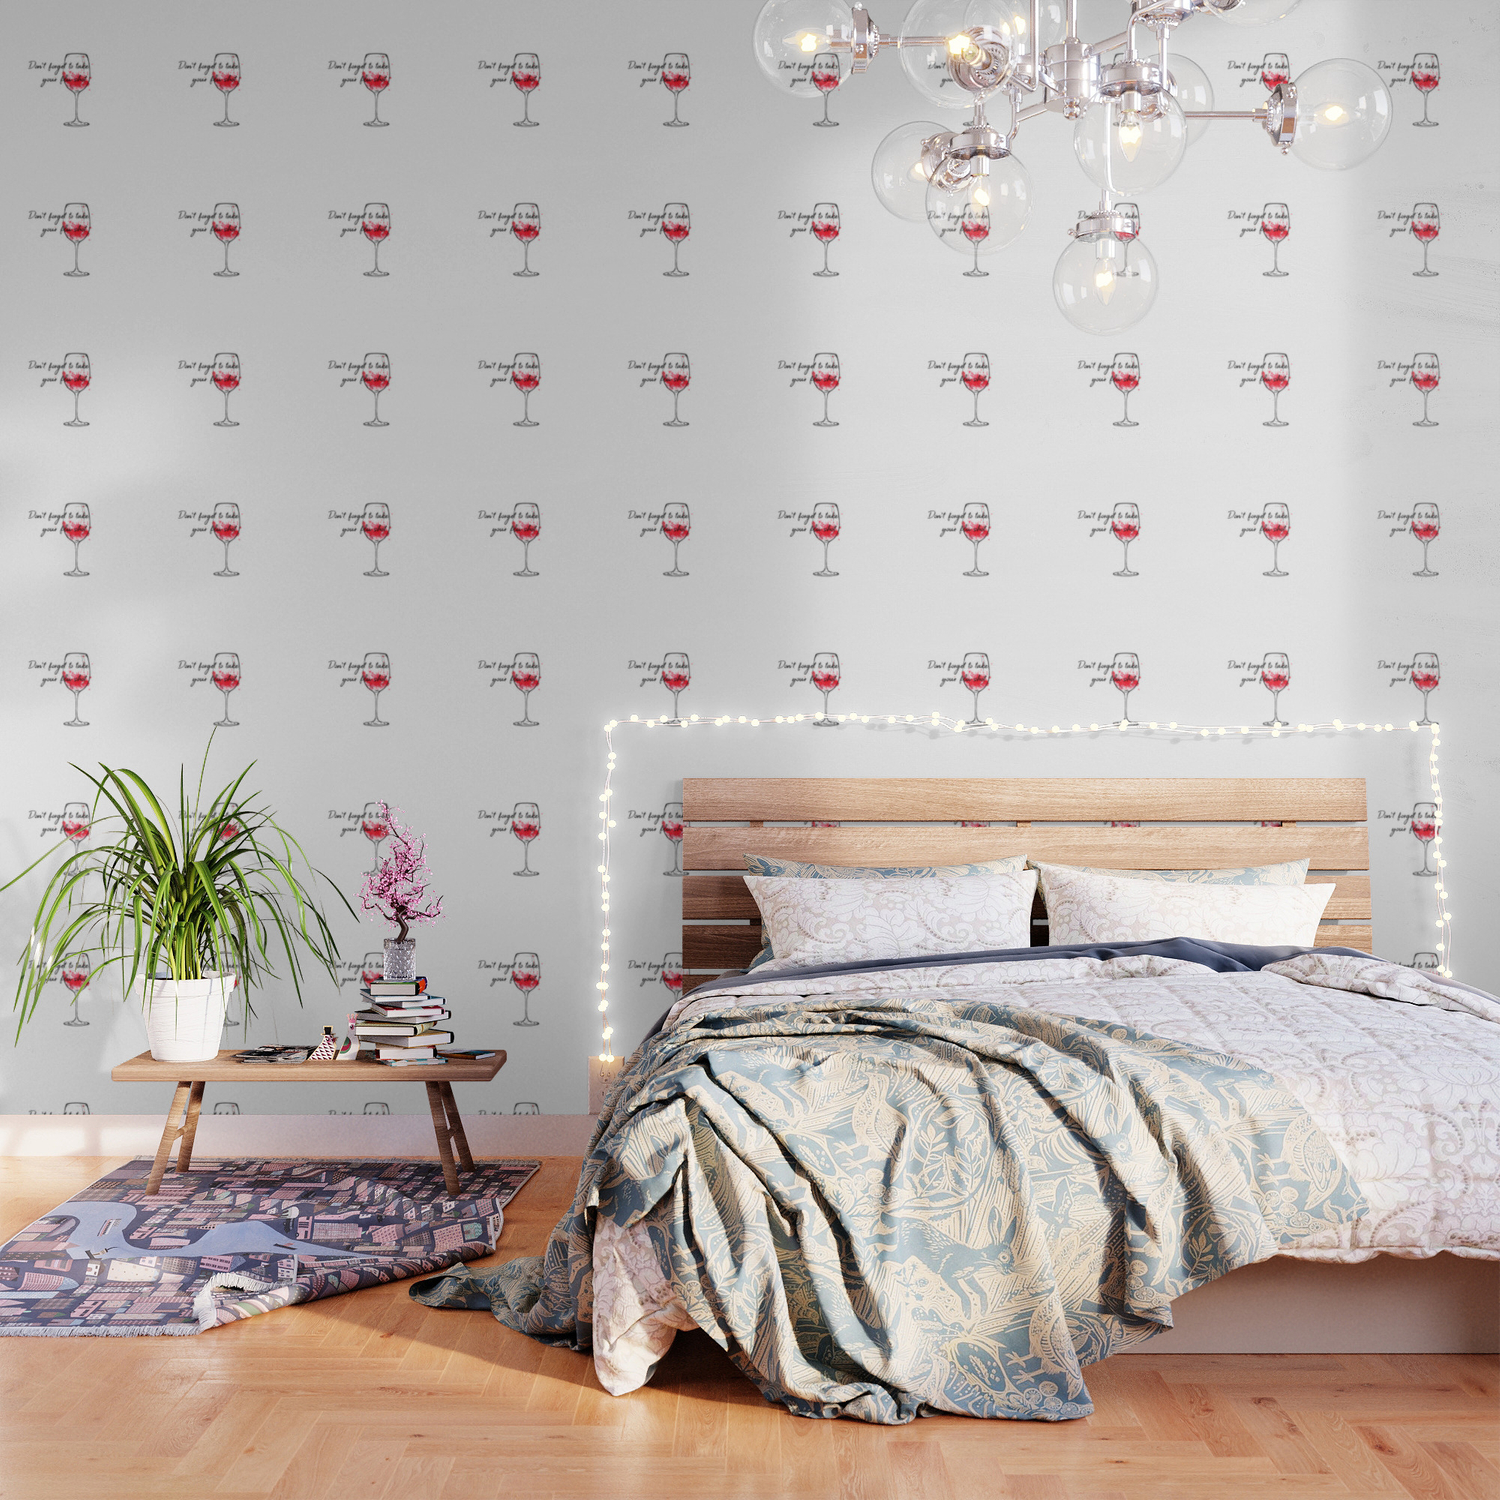 Don T Forget To Take Your Flu Shot Wine Glass Wallpaper By At85productions Society6